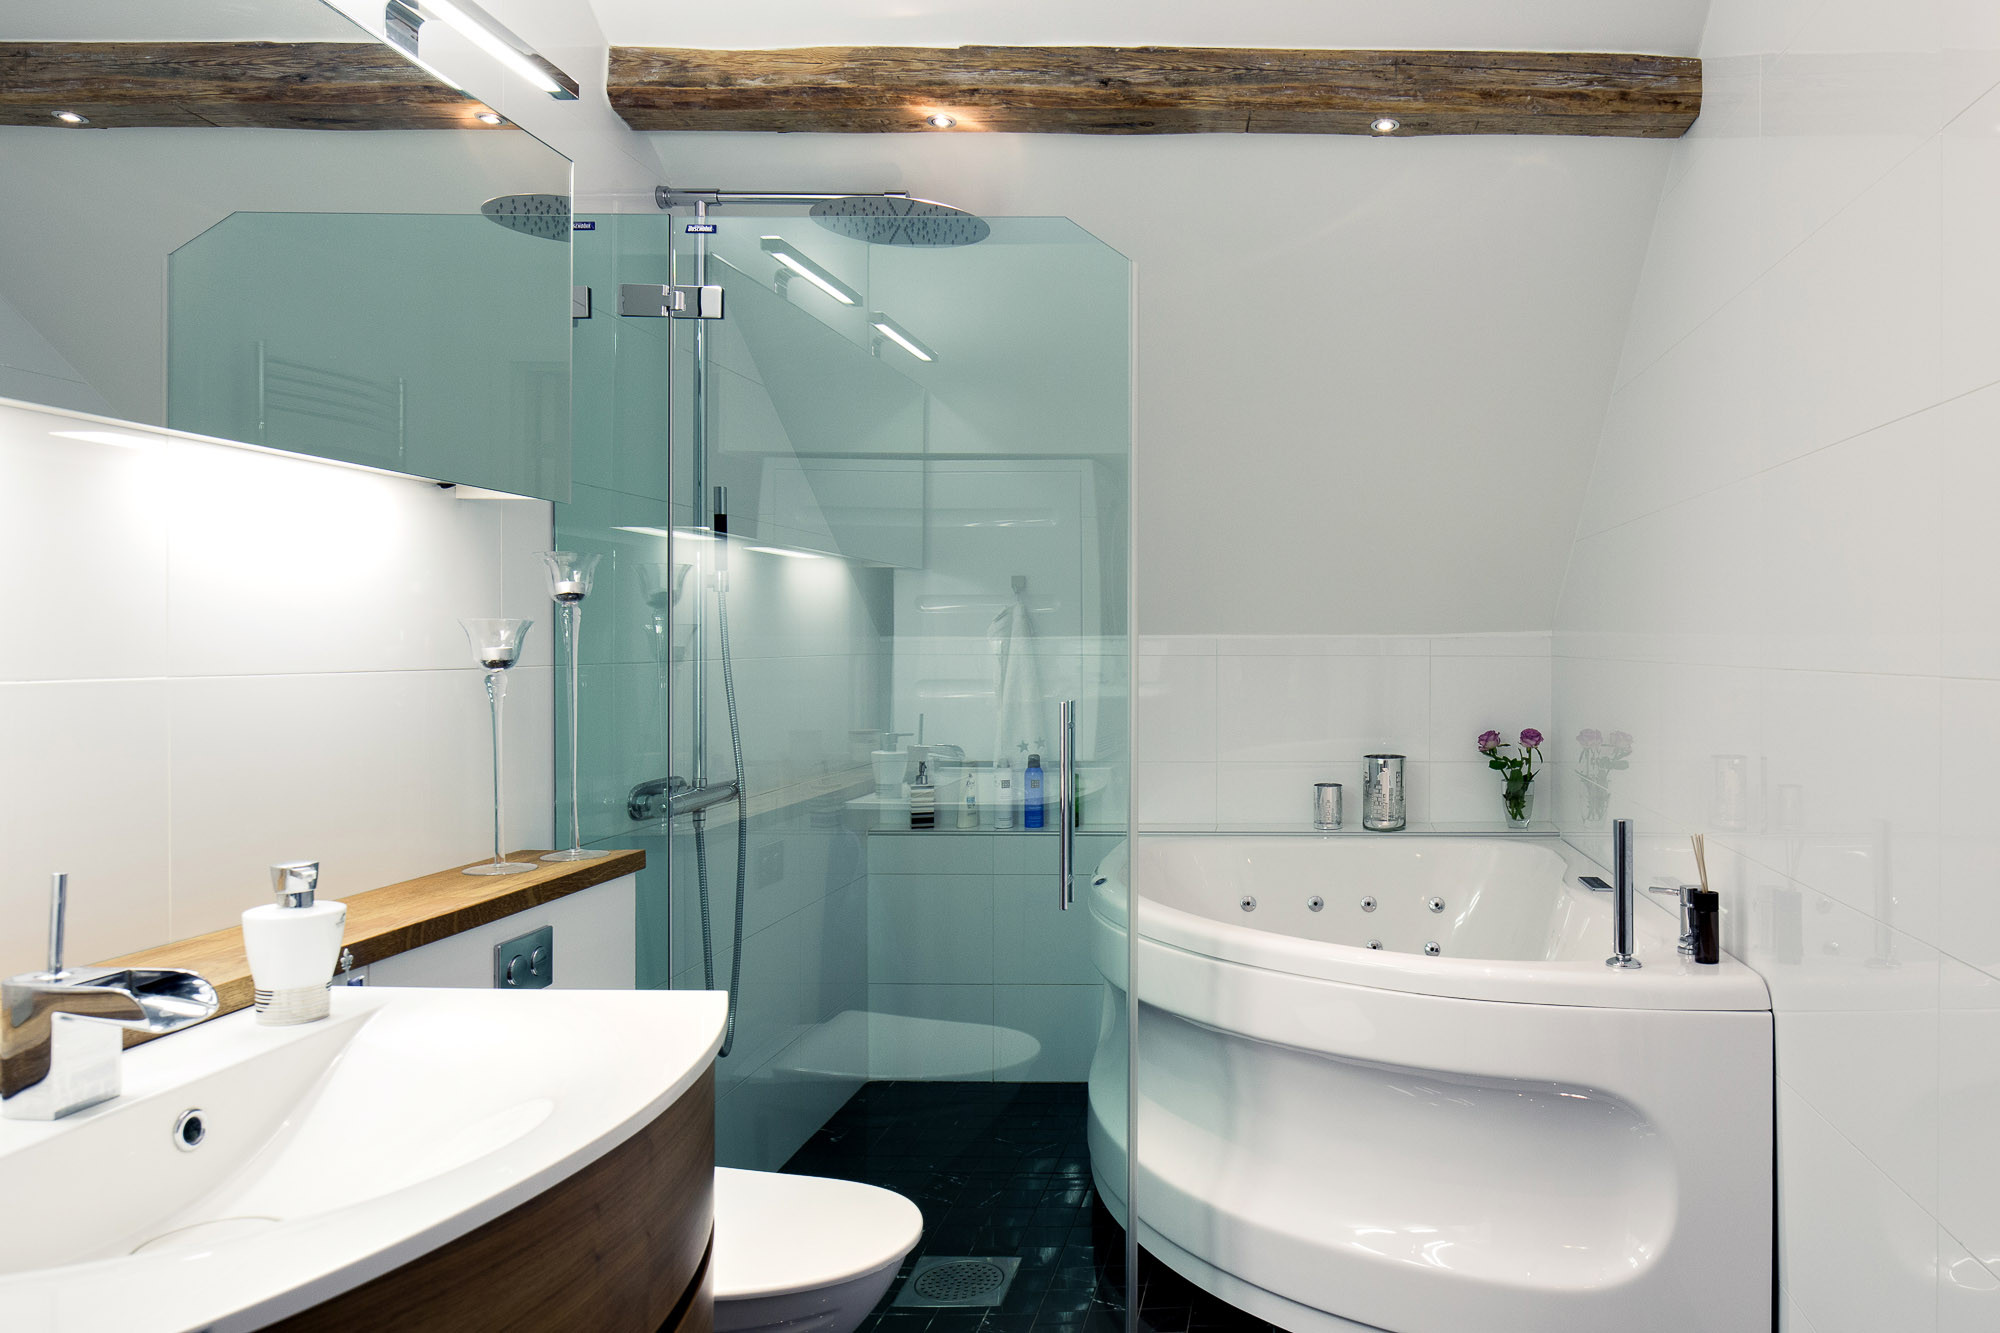 Modern Bathroom with Exposed Wood Beams